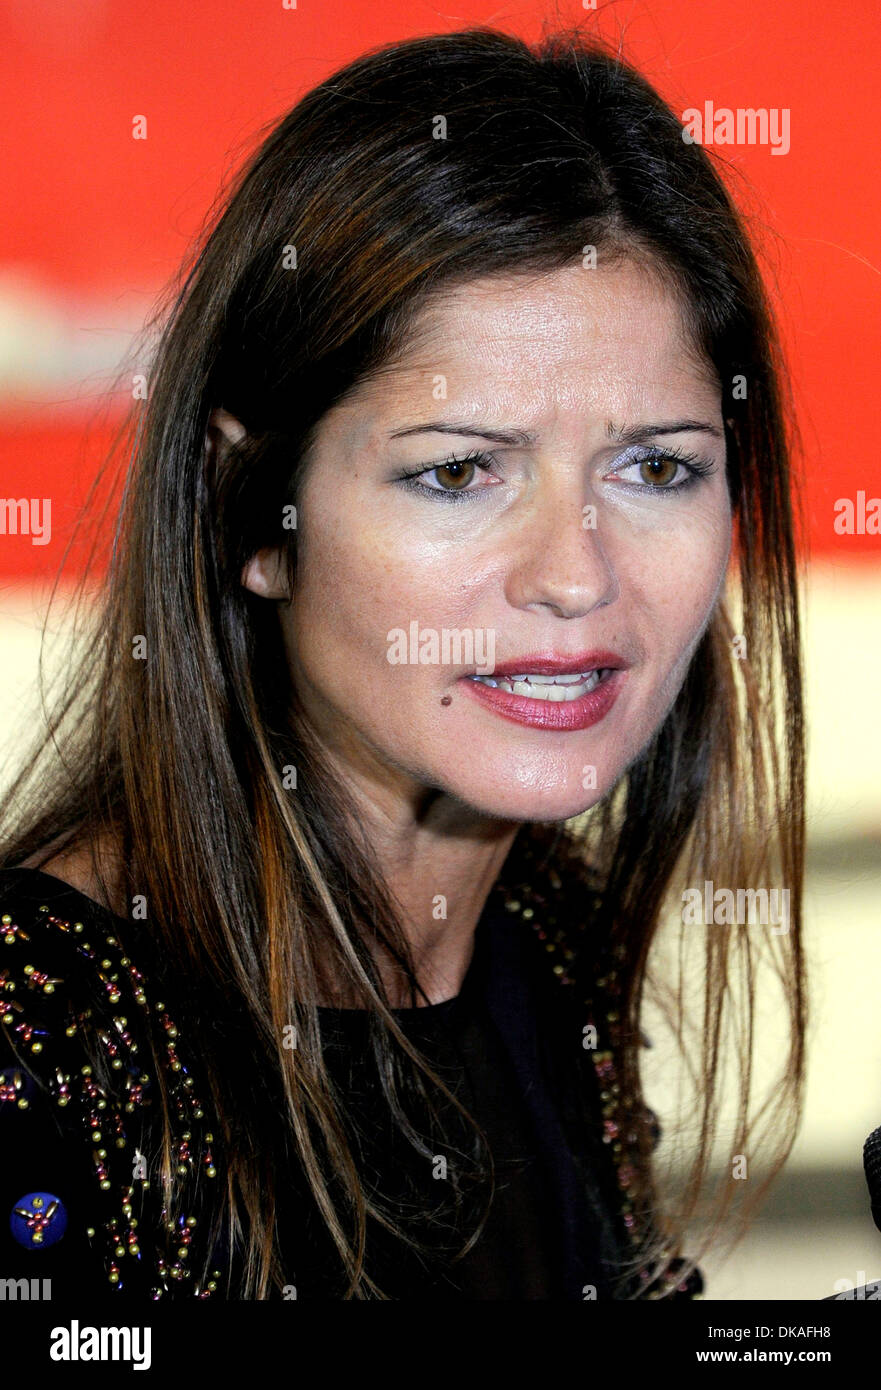 Jill Hennessey Canada's Walk of Fame Star unveilings at Ed Mirvish Theatre Toronto Canada - 22.09.12 - Stock Image